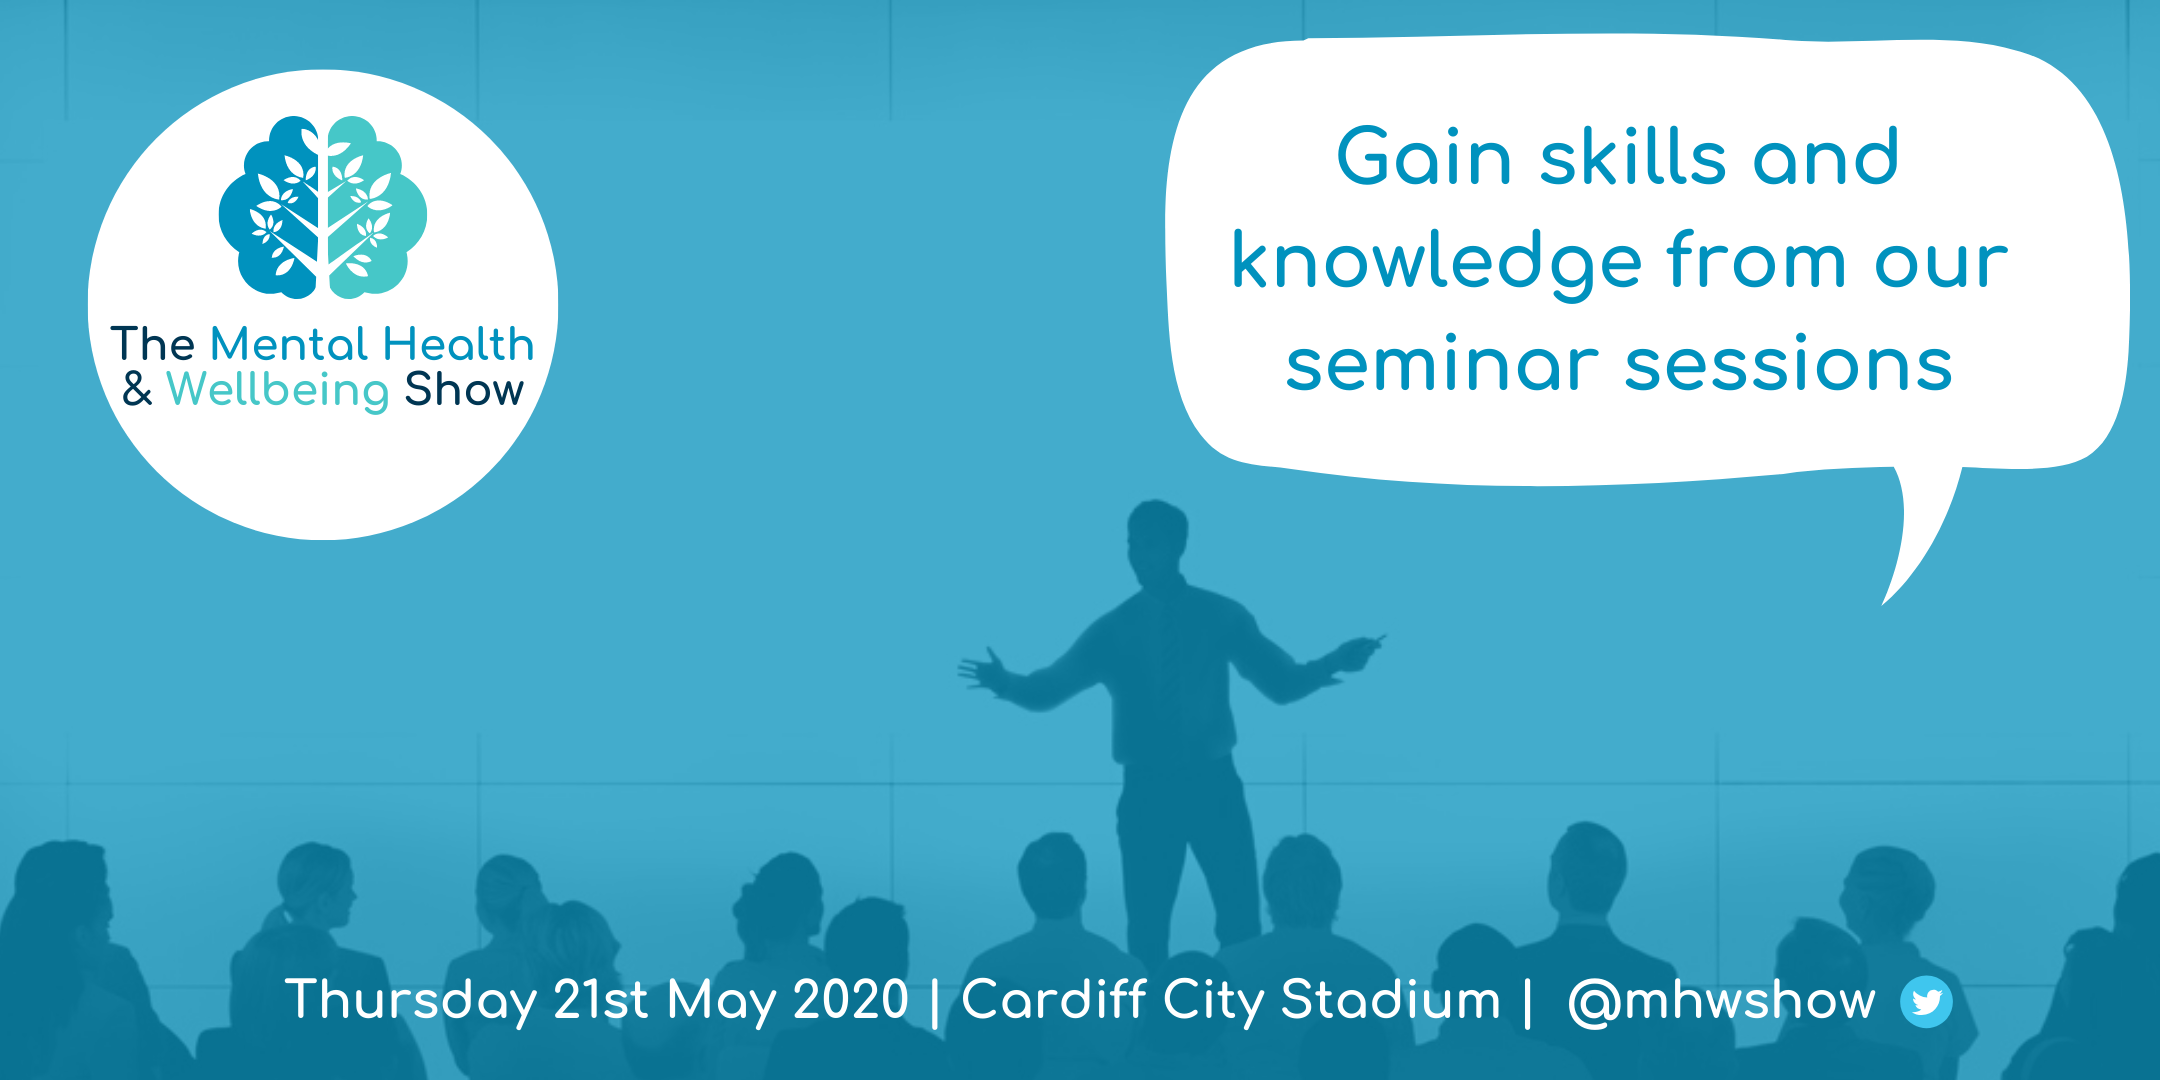 Our most popular seminars are selling quickly!